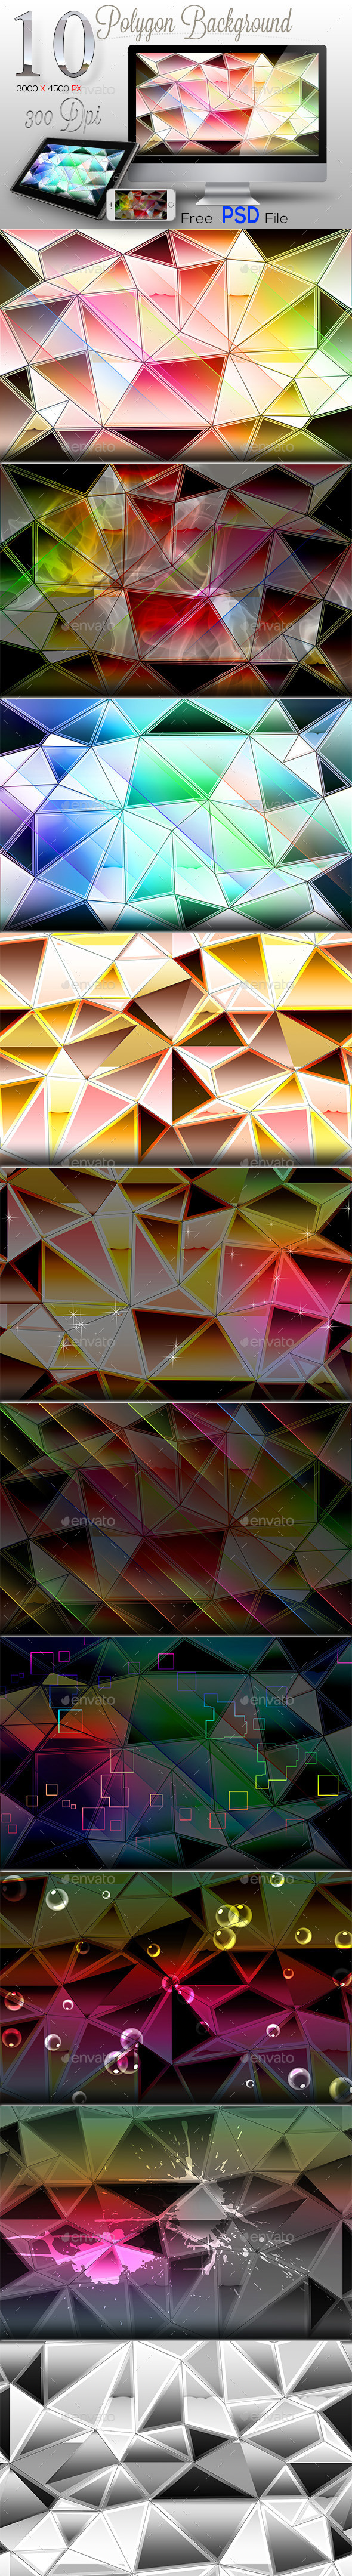 GraphicRiver 10 Polygon Backgrounds 9830790